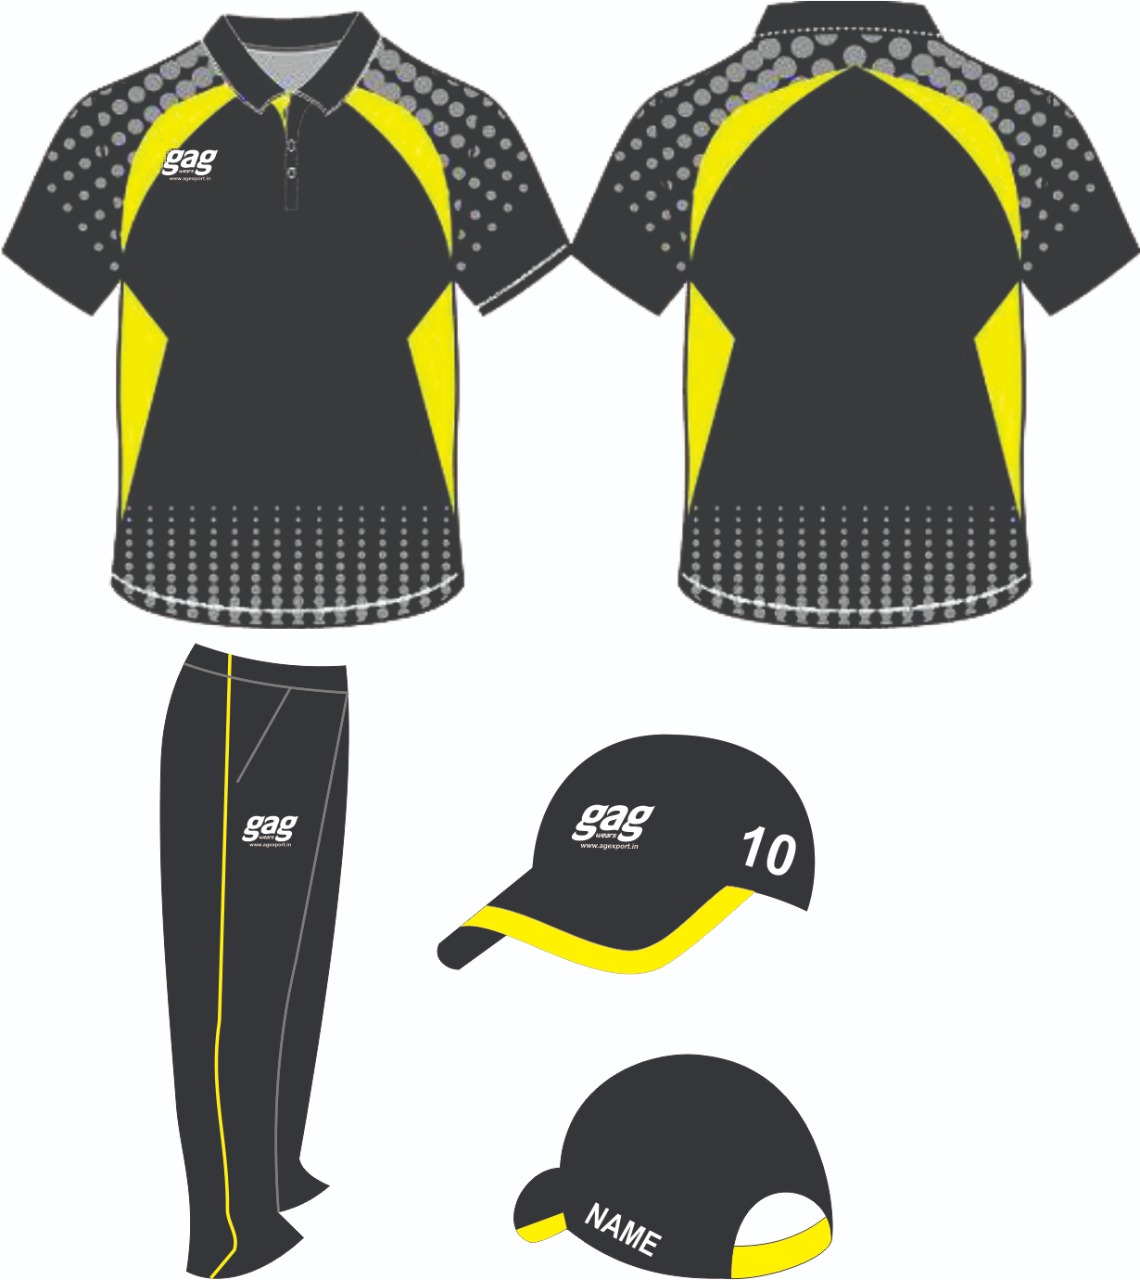 Cricket Uniform Manufacturers and Exporters in Dhubri